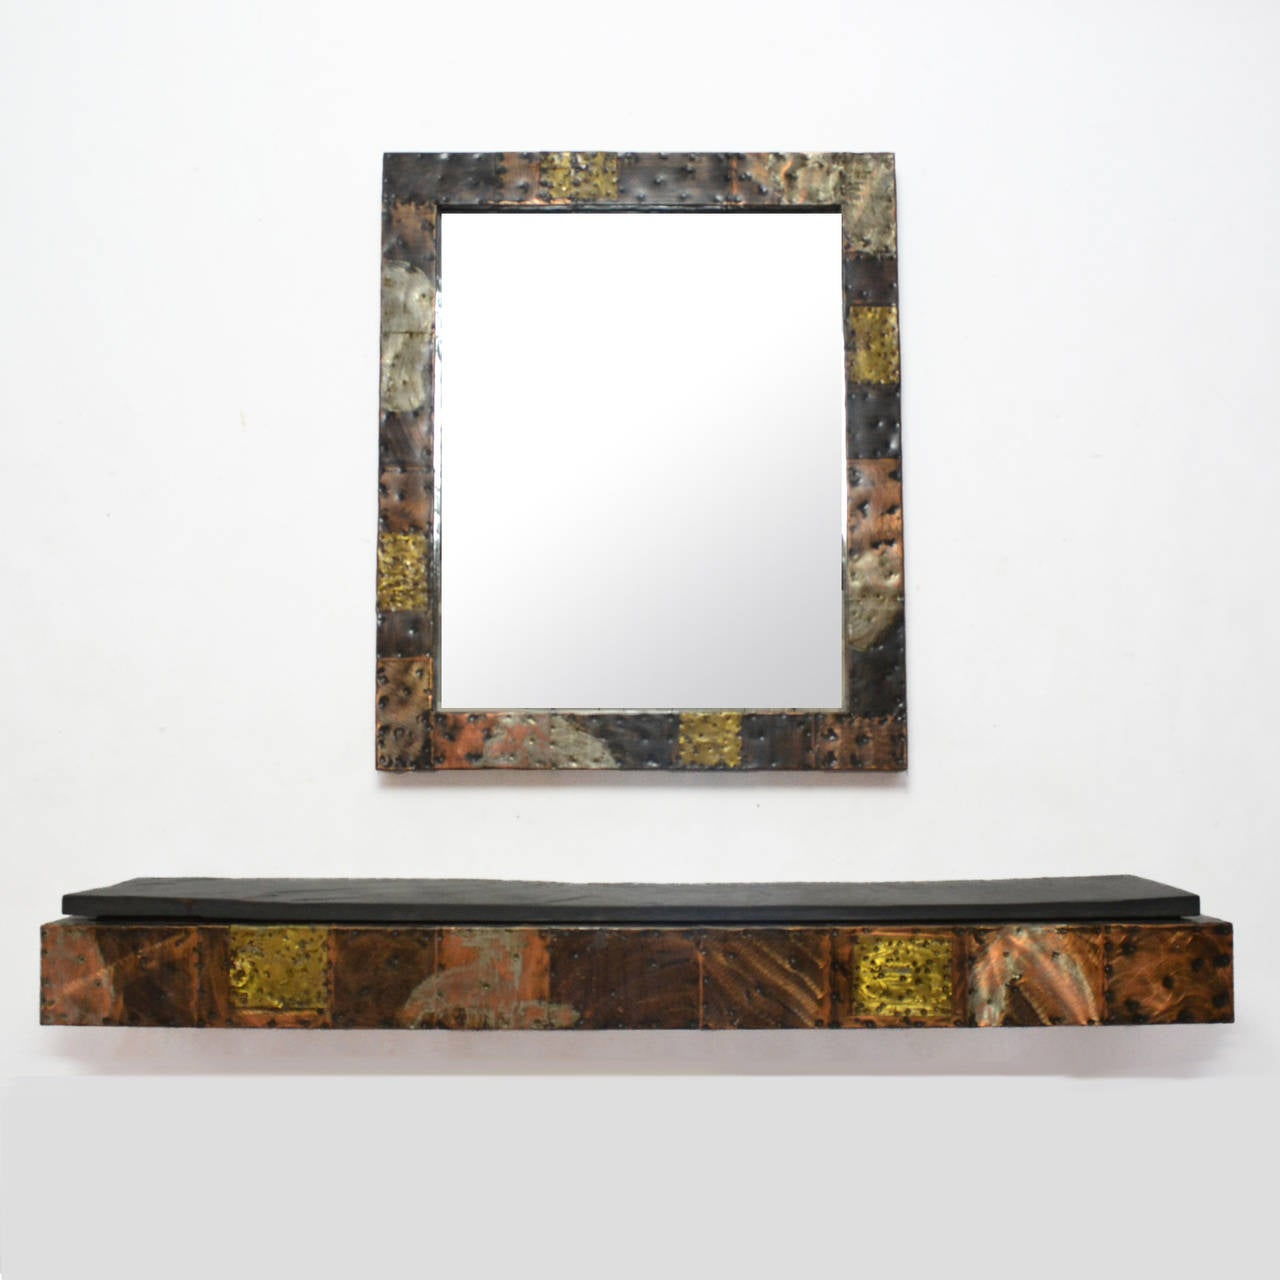 Paul Evans Patchwork Mirror and Wall-Mounted Console 2